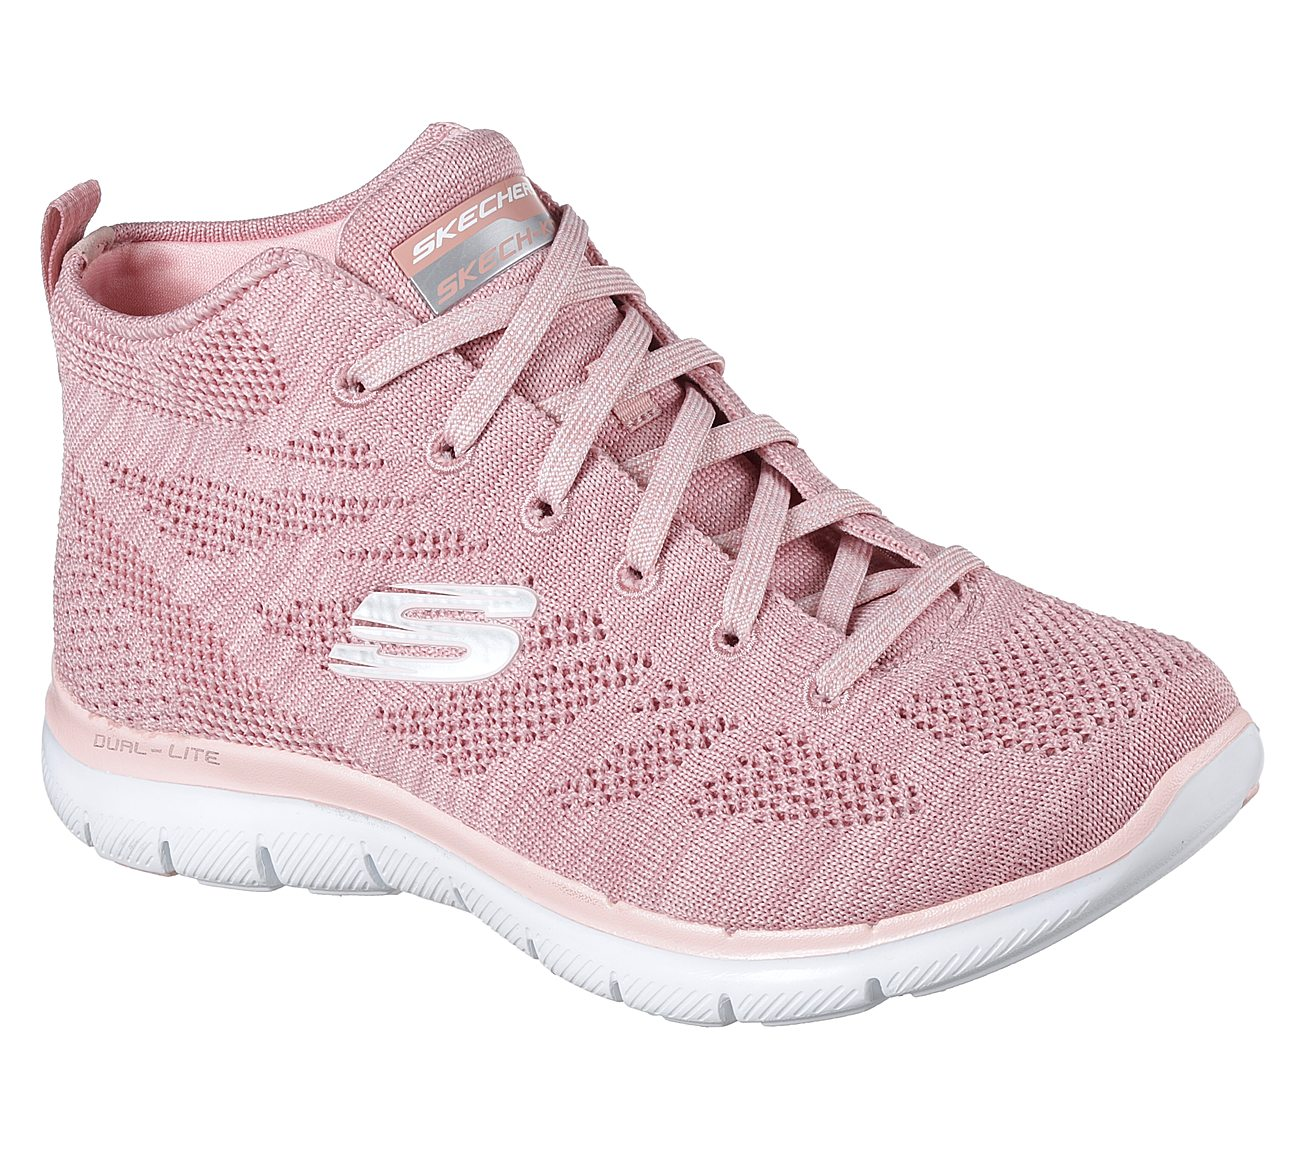 skechers flex appeal womens for sale